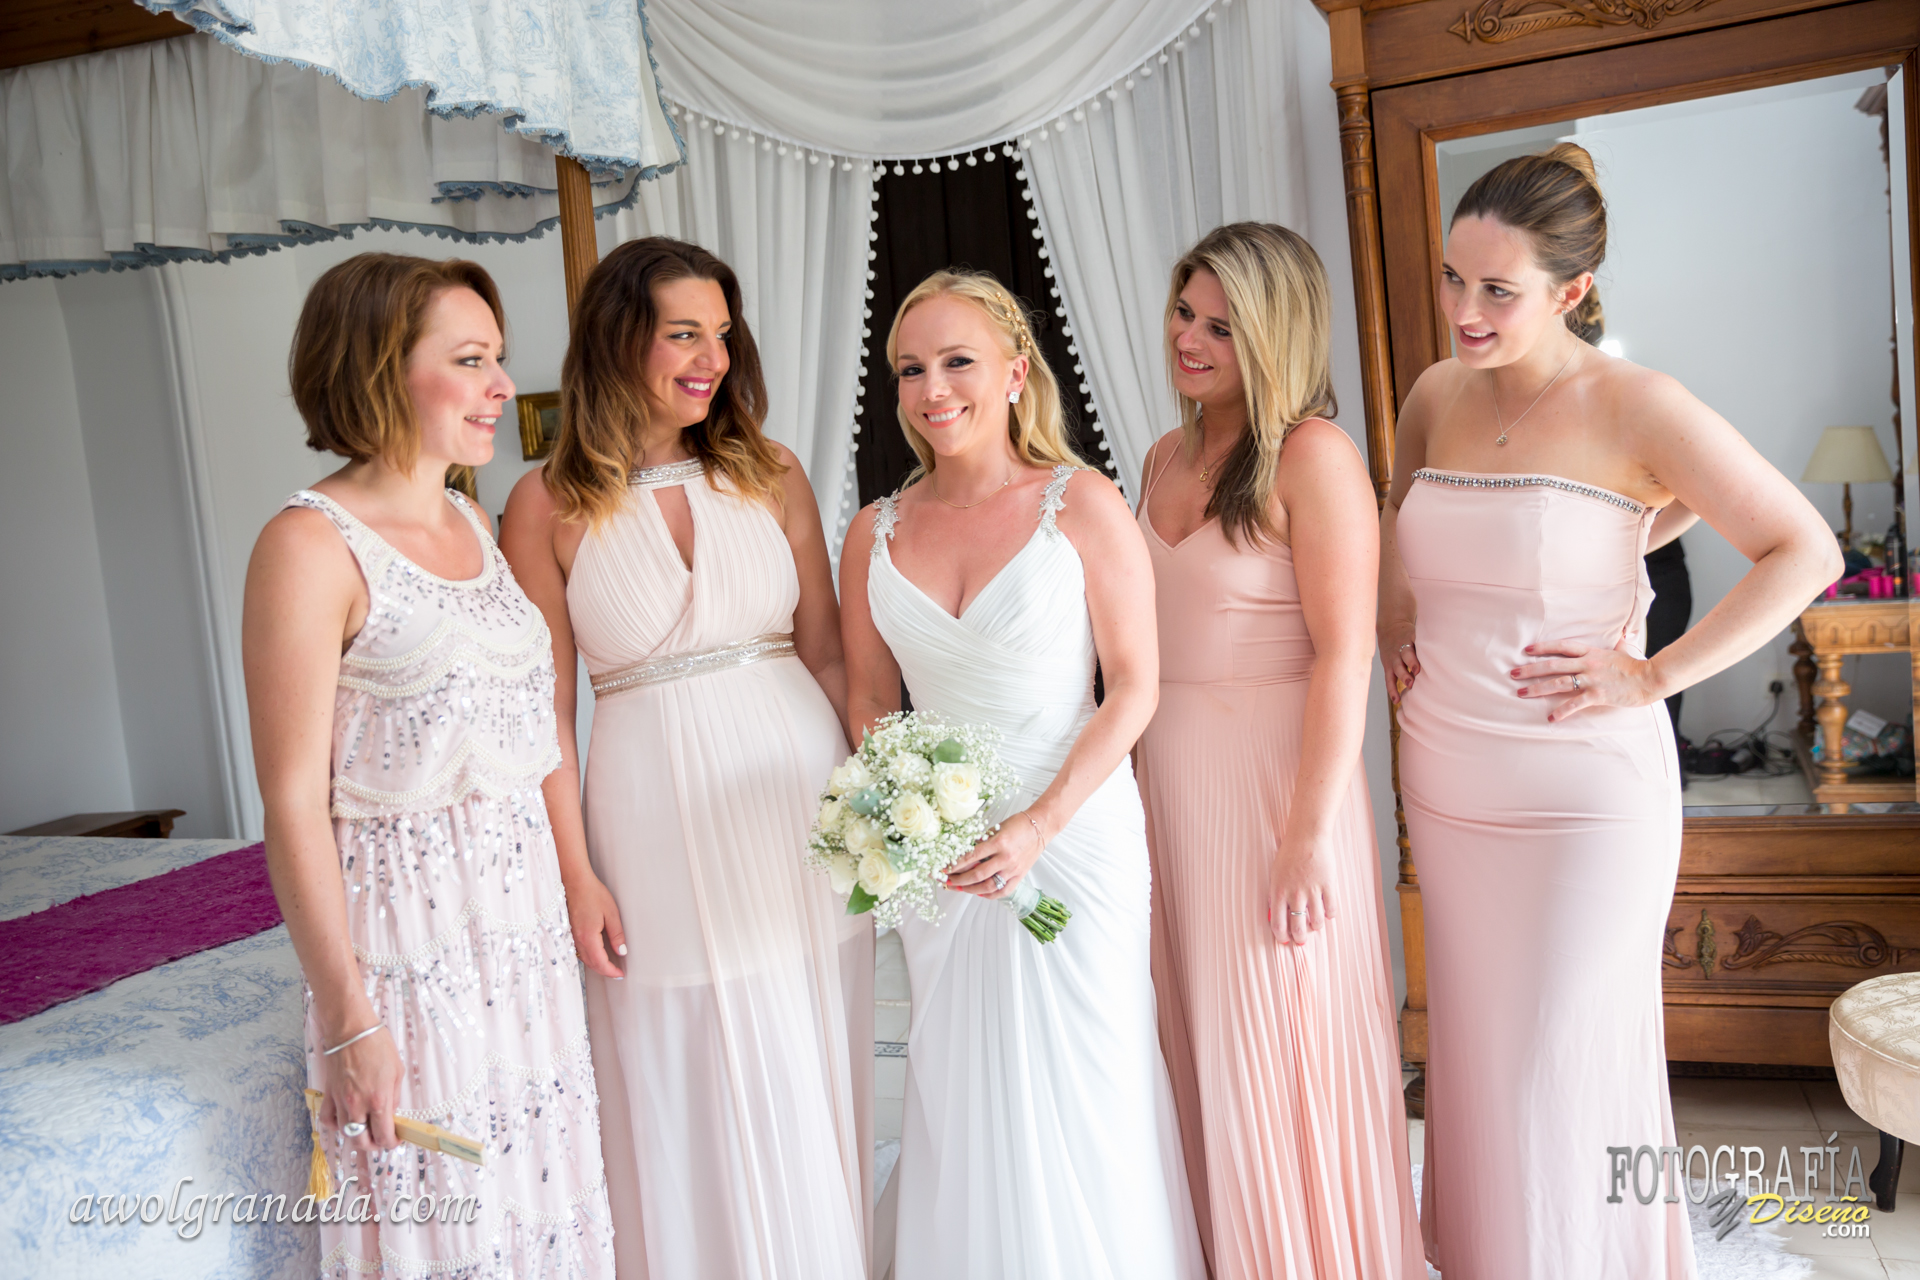 The Bride & bridesmaids all dressed up and ready to go